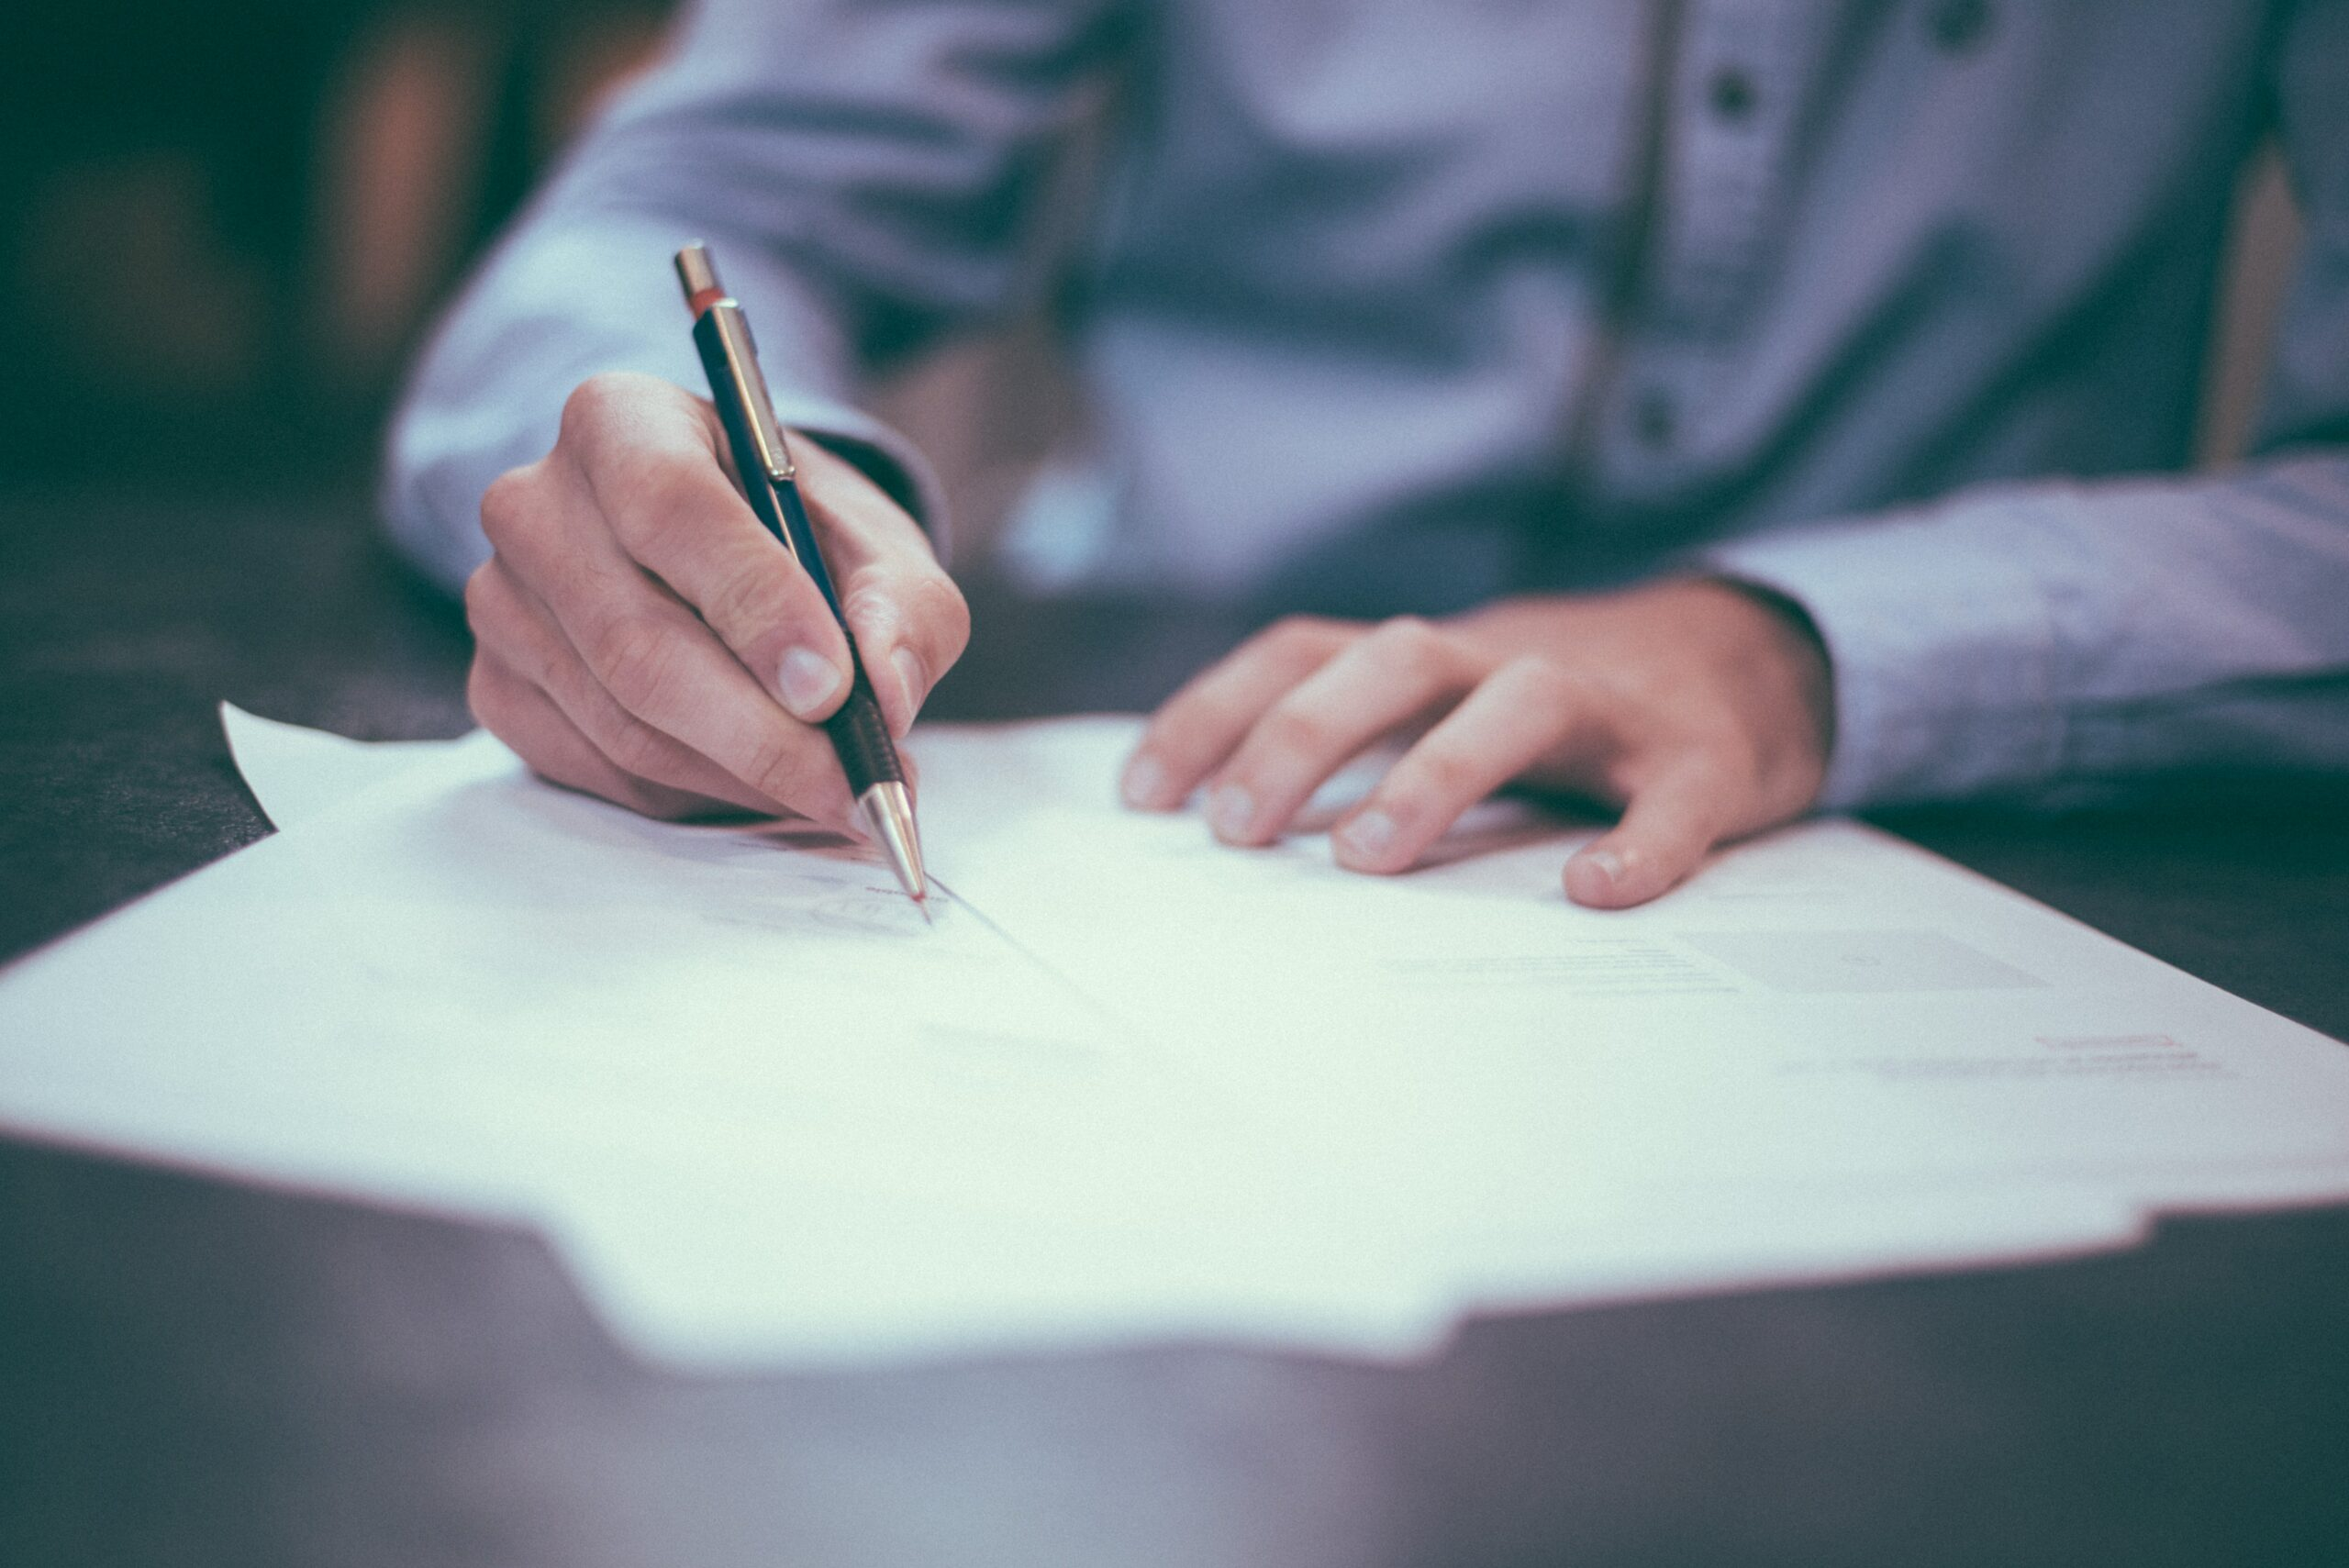 Six Steps to Take After Being Wrongfully Terminated